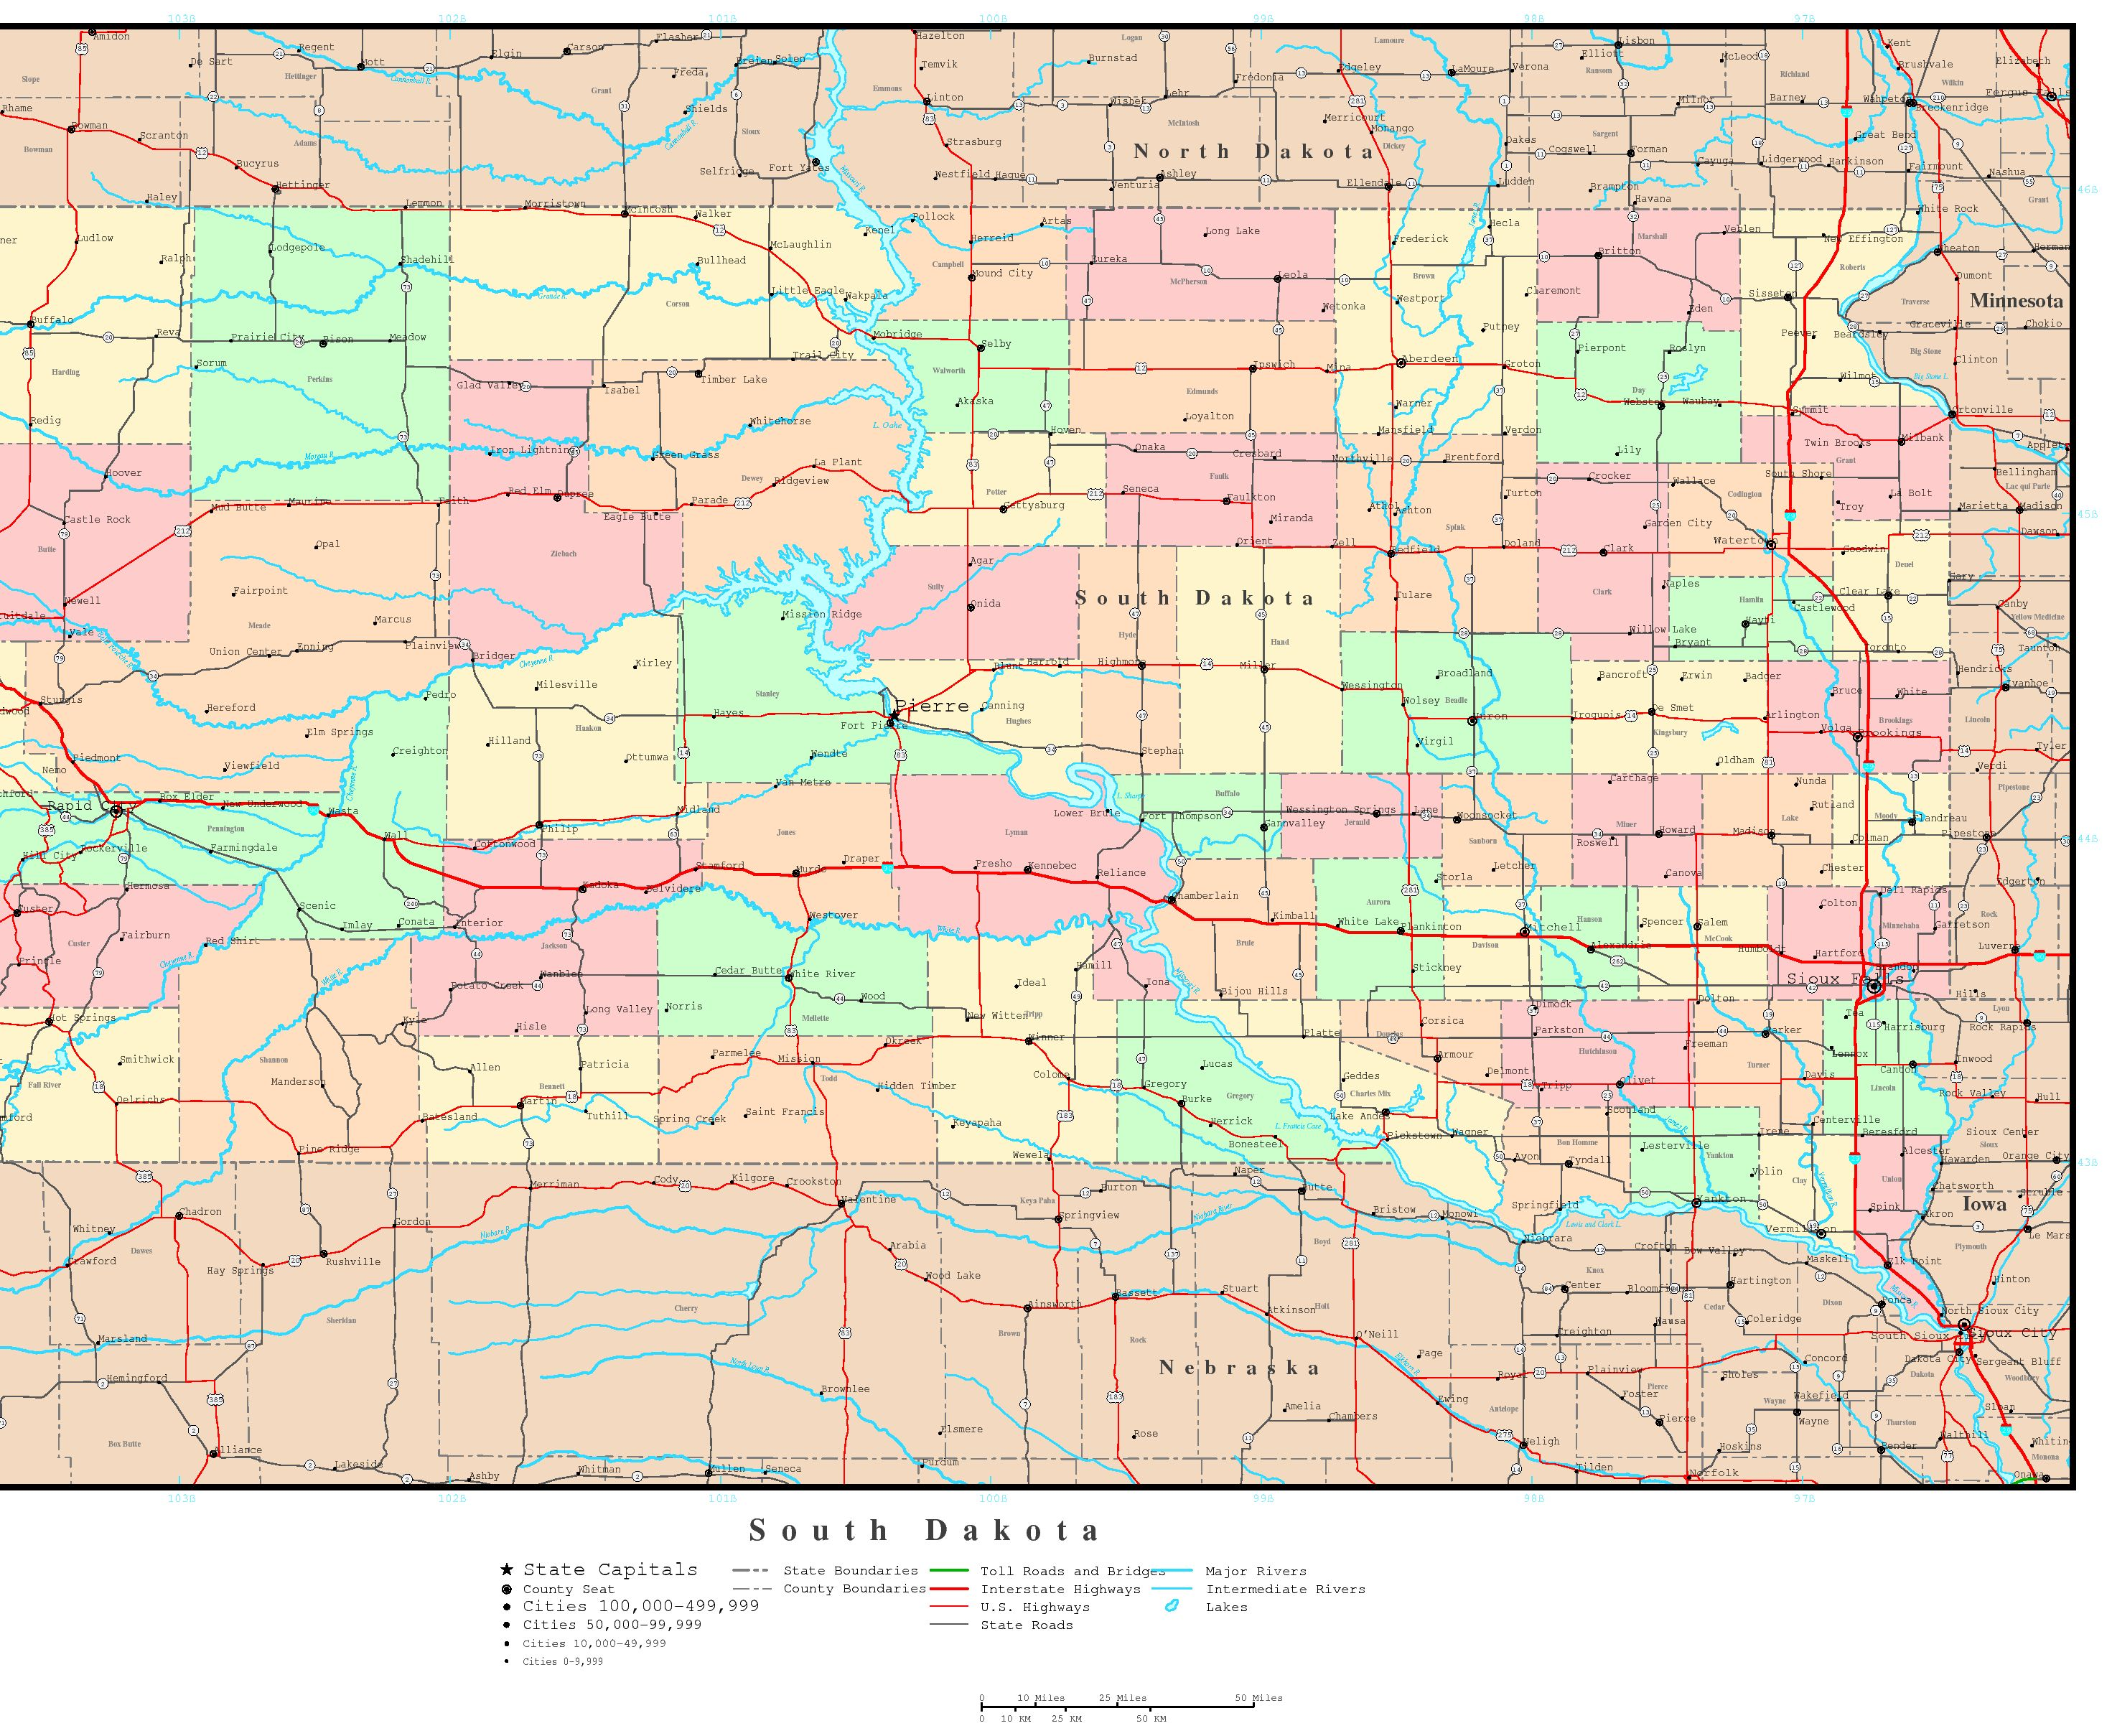 South Dakota Political Map - Political map of south dakota